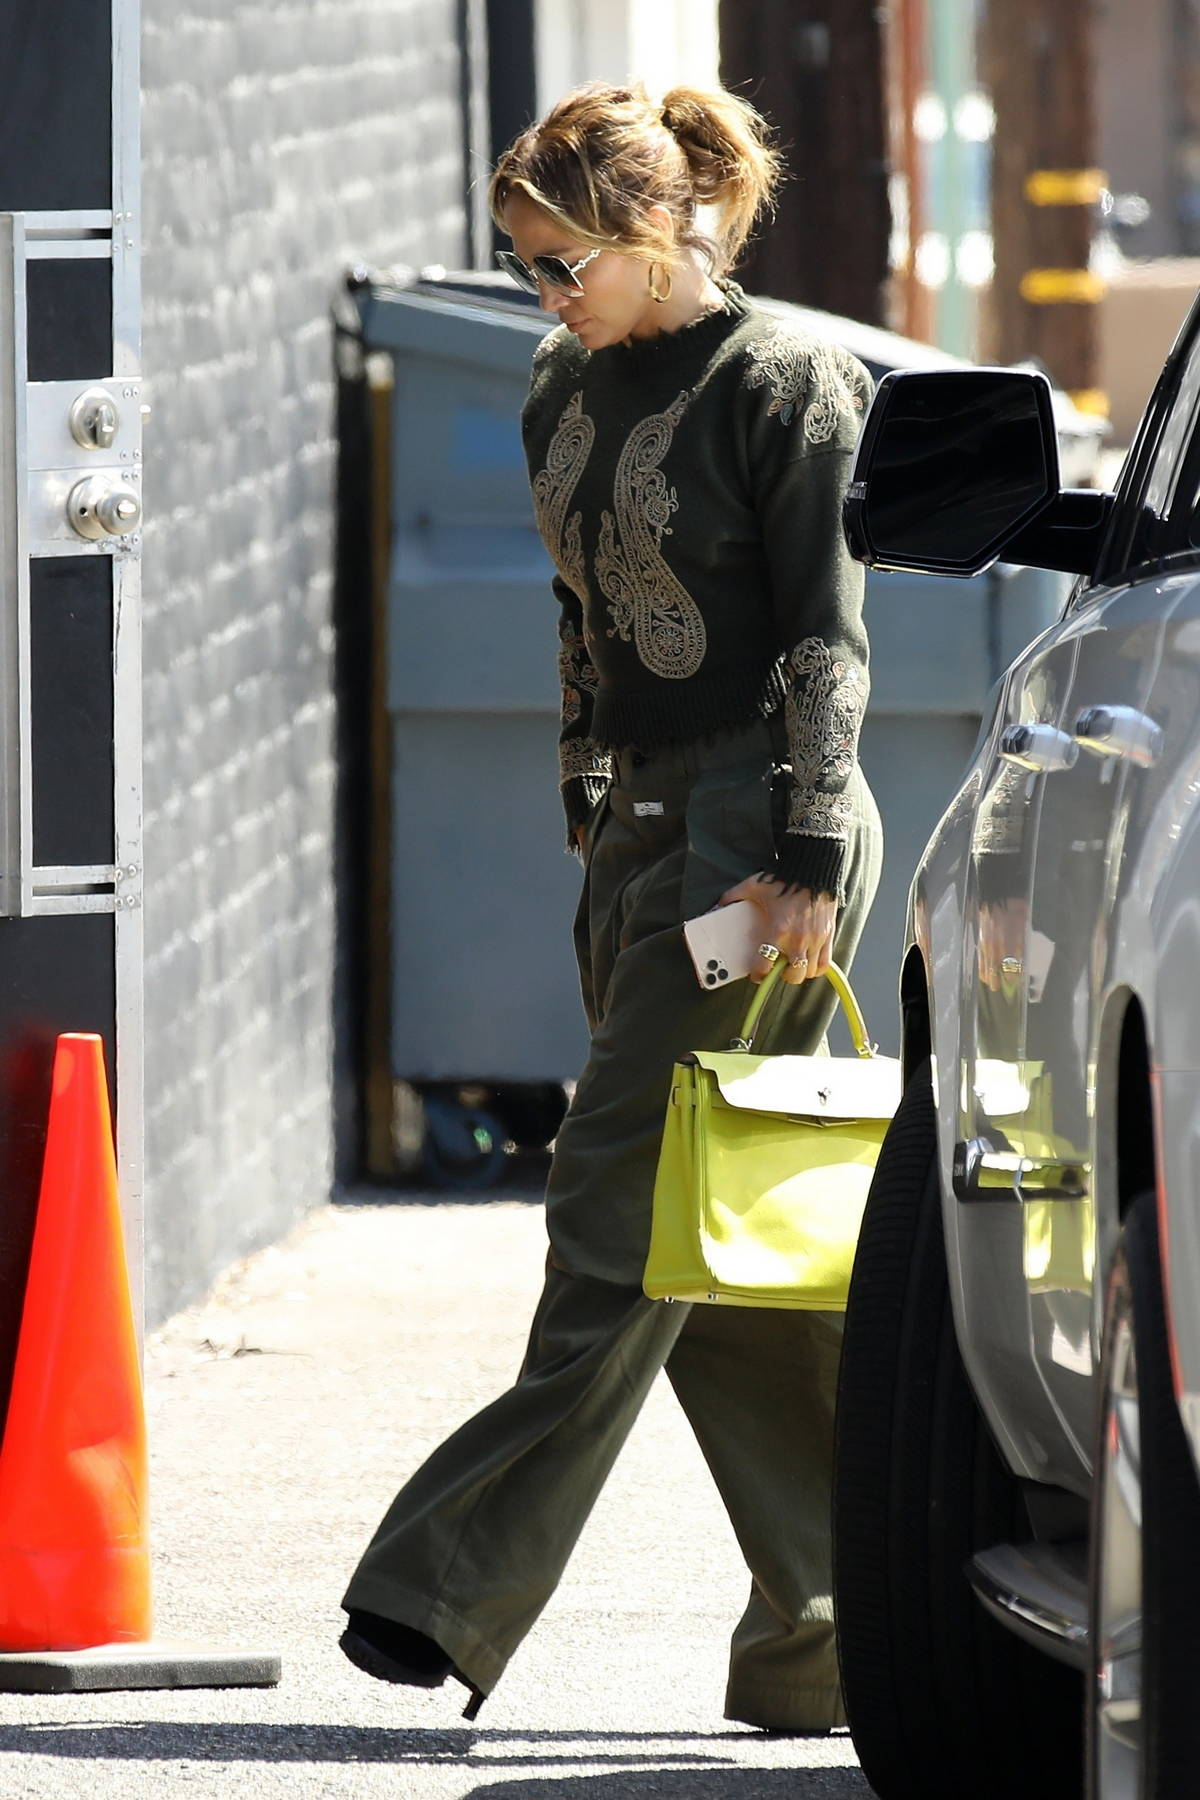 Jennifer Lopez wears a stylish green ensemble while out running errands in Los Angeles